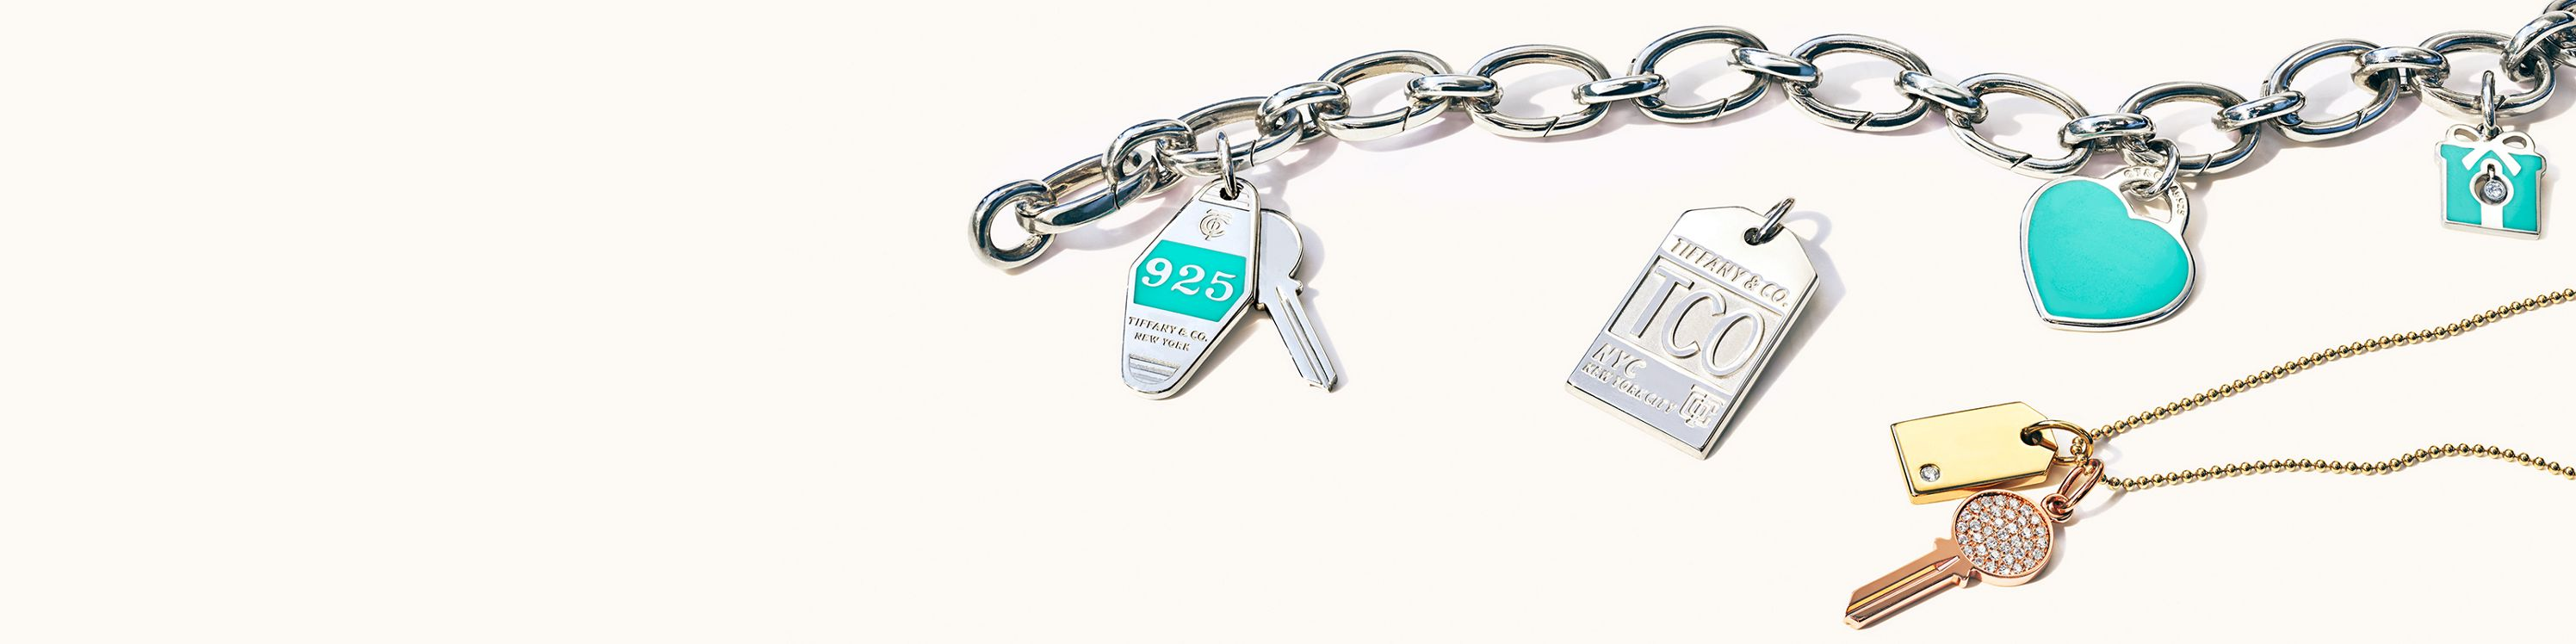 fdfa39800 Charms for Bracelets & Necklaces | Tiffany & Co.